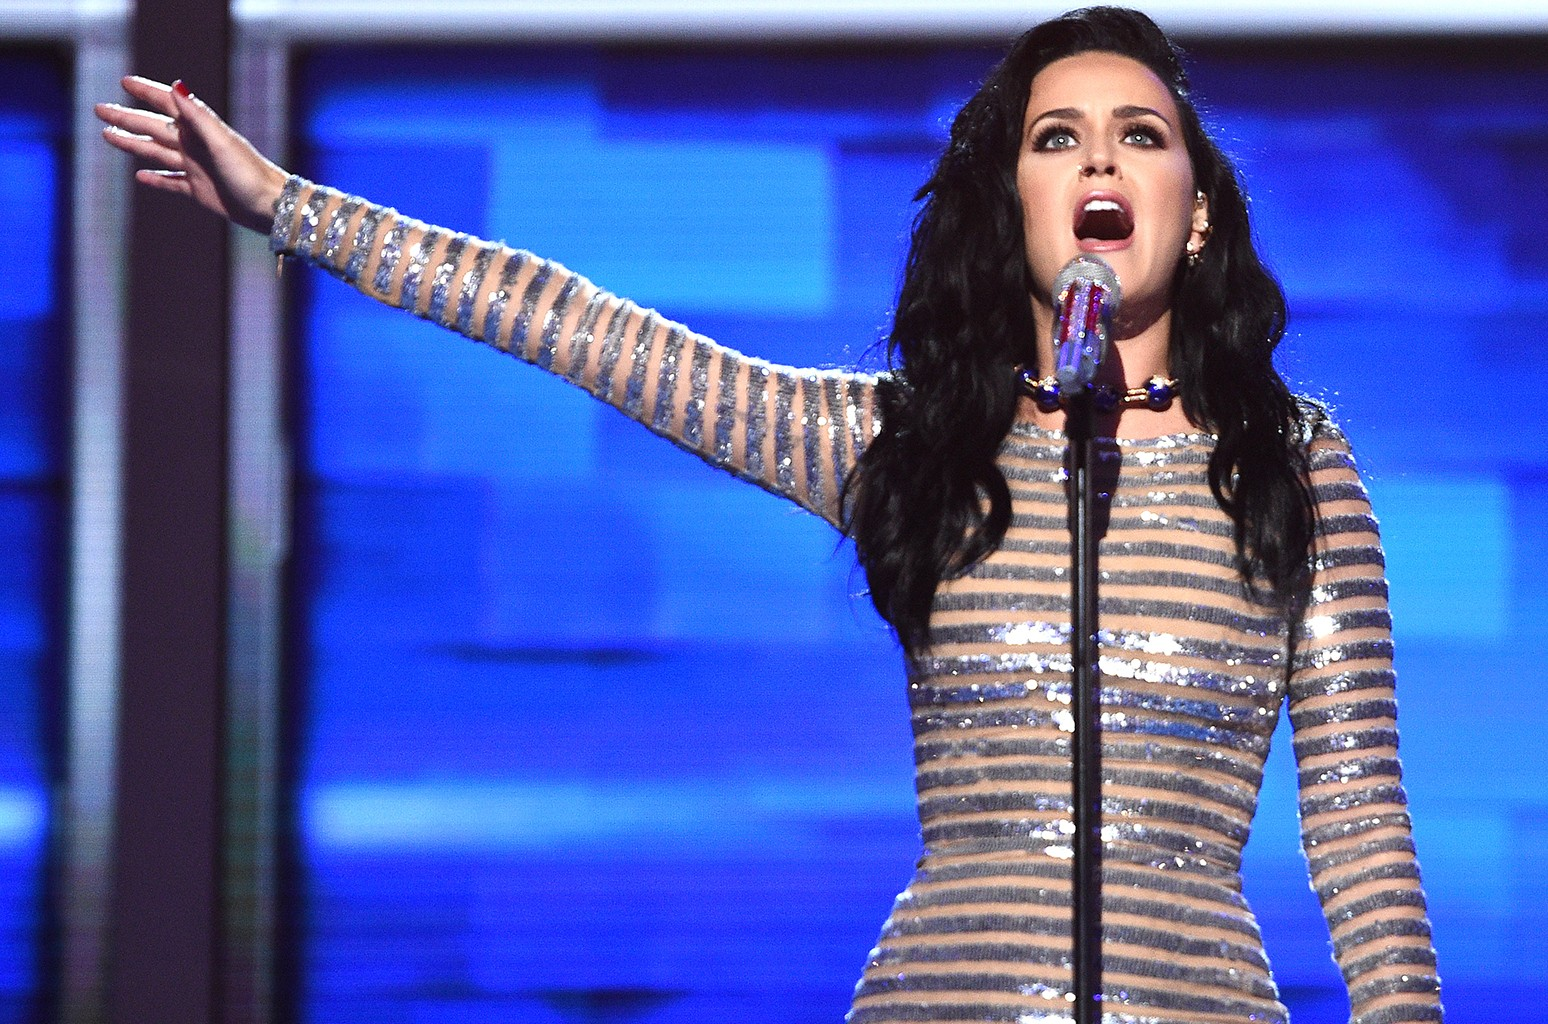 Katy Perry performs at the DNC